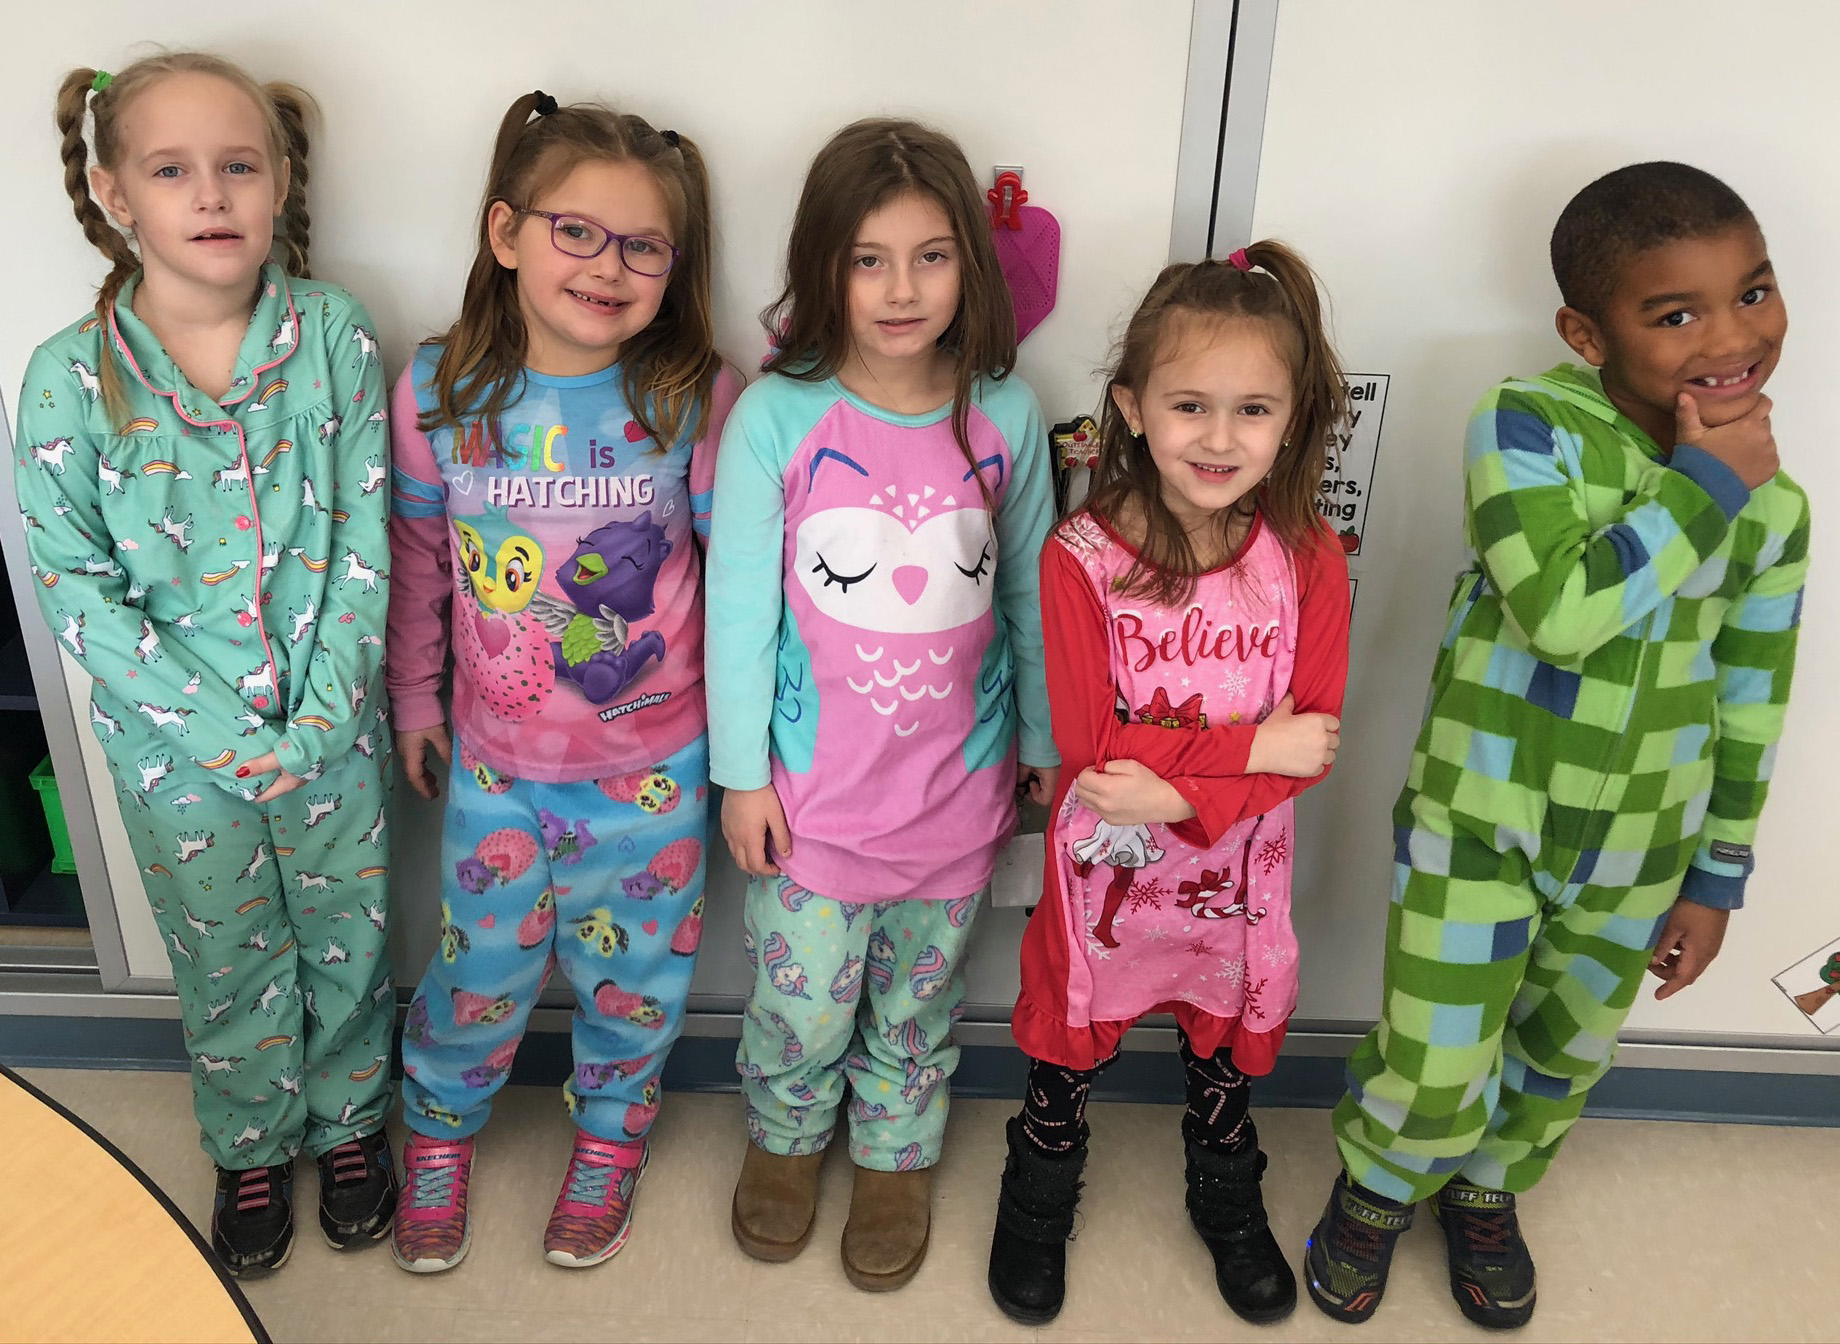 group of students wearing pajamas at school